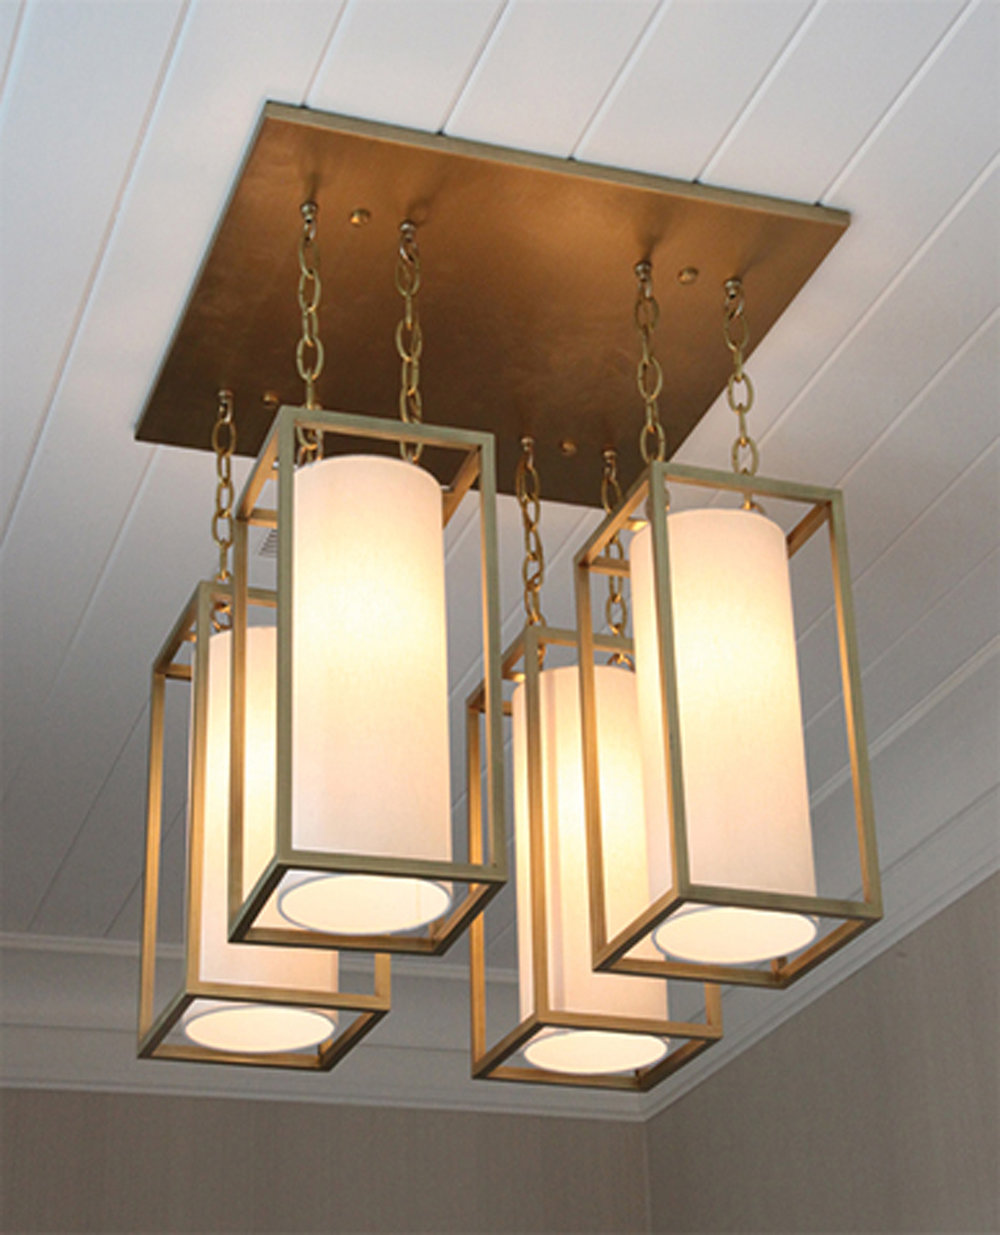 Boxed_C-170_Boxed Quad Ceiling Fixture_Satin Brass_White.jpg